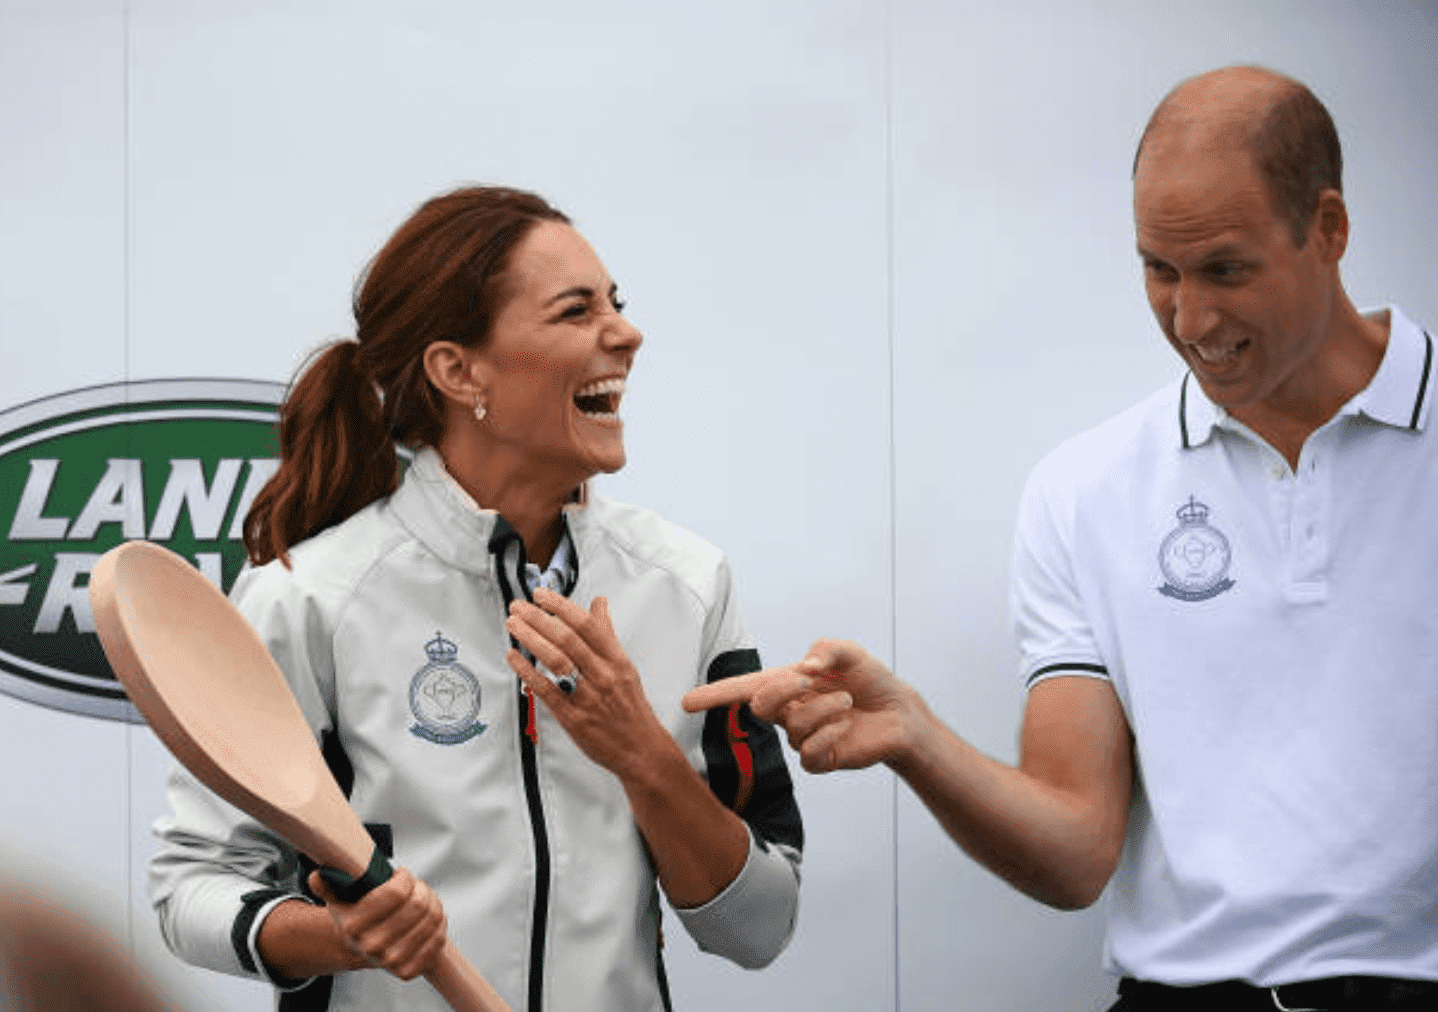 Kate Middleton receiving the wooden spoon at The King's Cup regatta, Isle of Wright | GettyImages